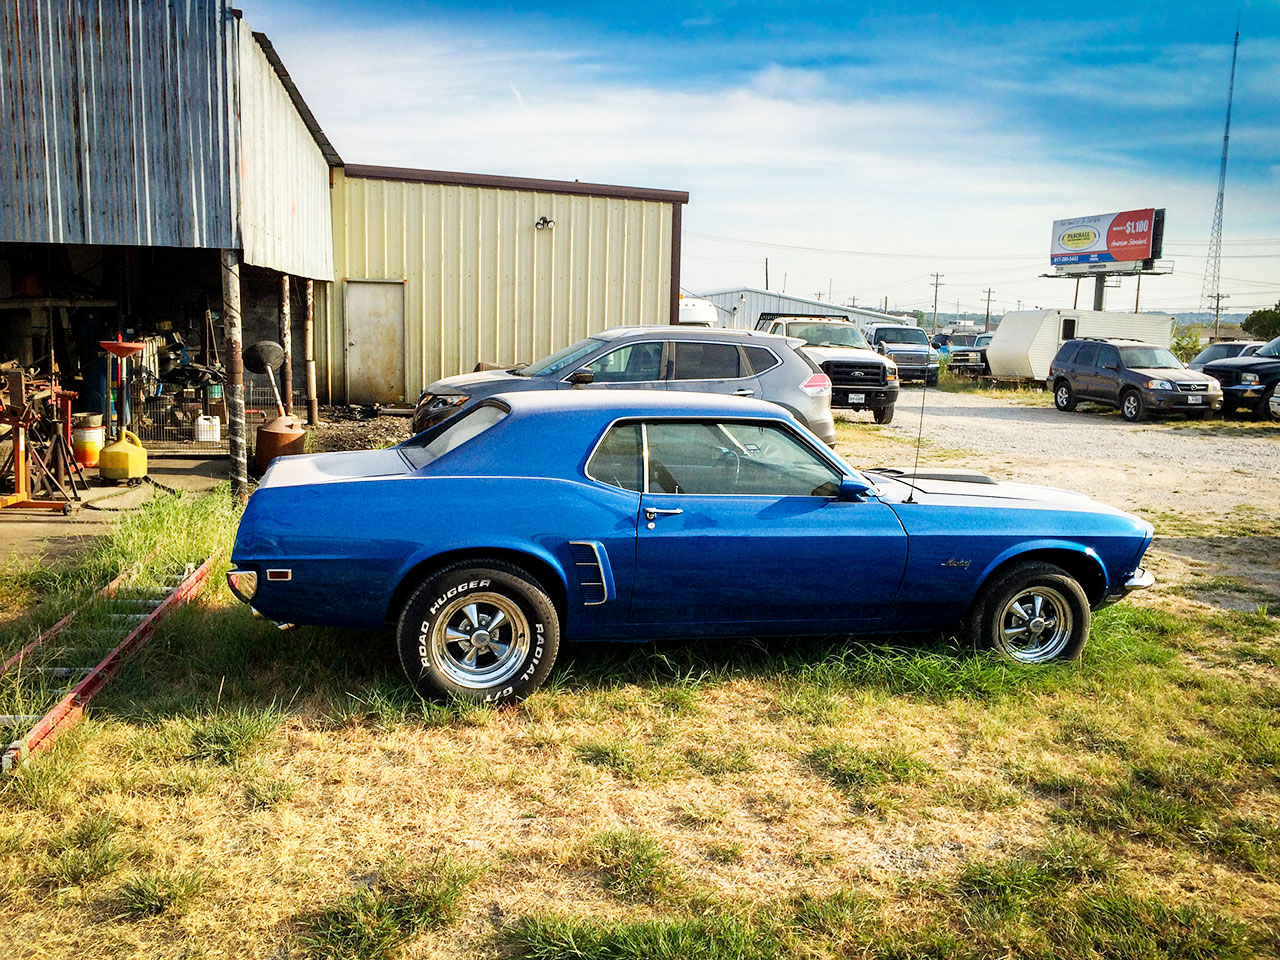 The 1969 Blue Mustang That Made My Wish List1969 Mustang Coupe Blue